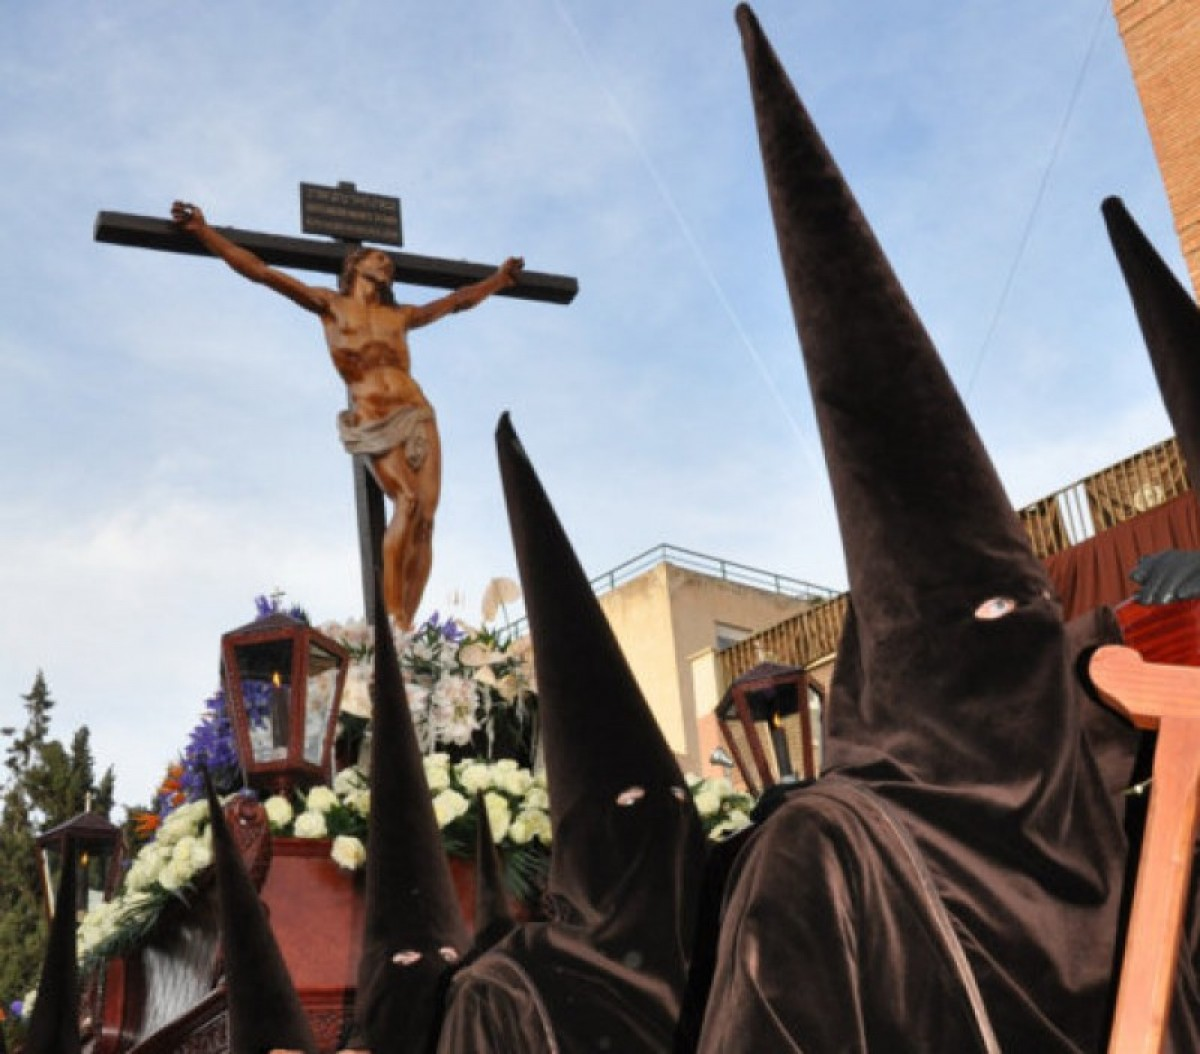 Tickets on sale for the major Murcia Semana Santa processions